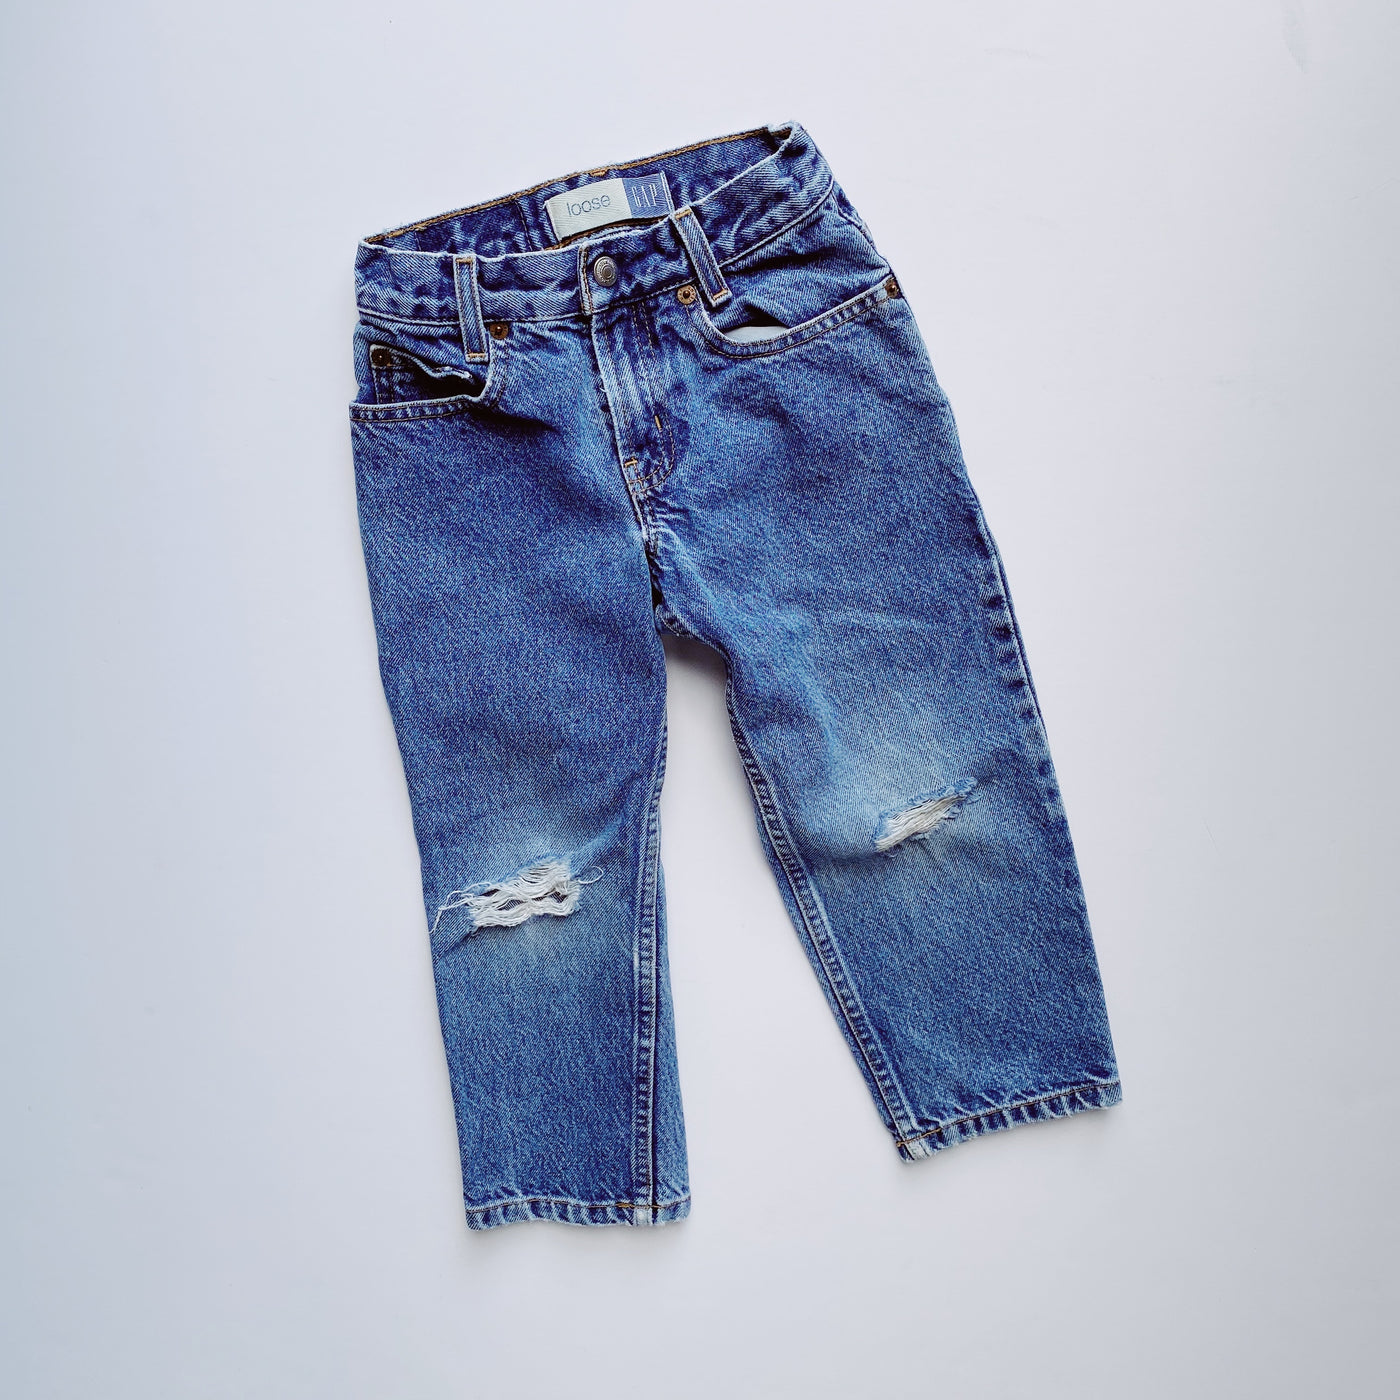 Vintage Baby Gap Perfect 10 Torn Jeans / Size 4T